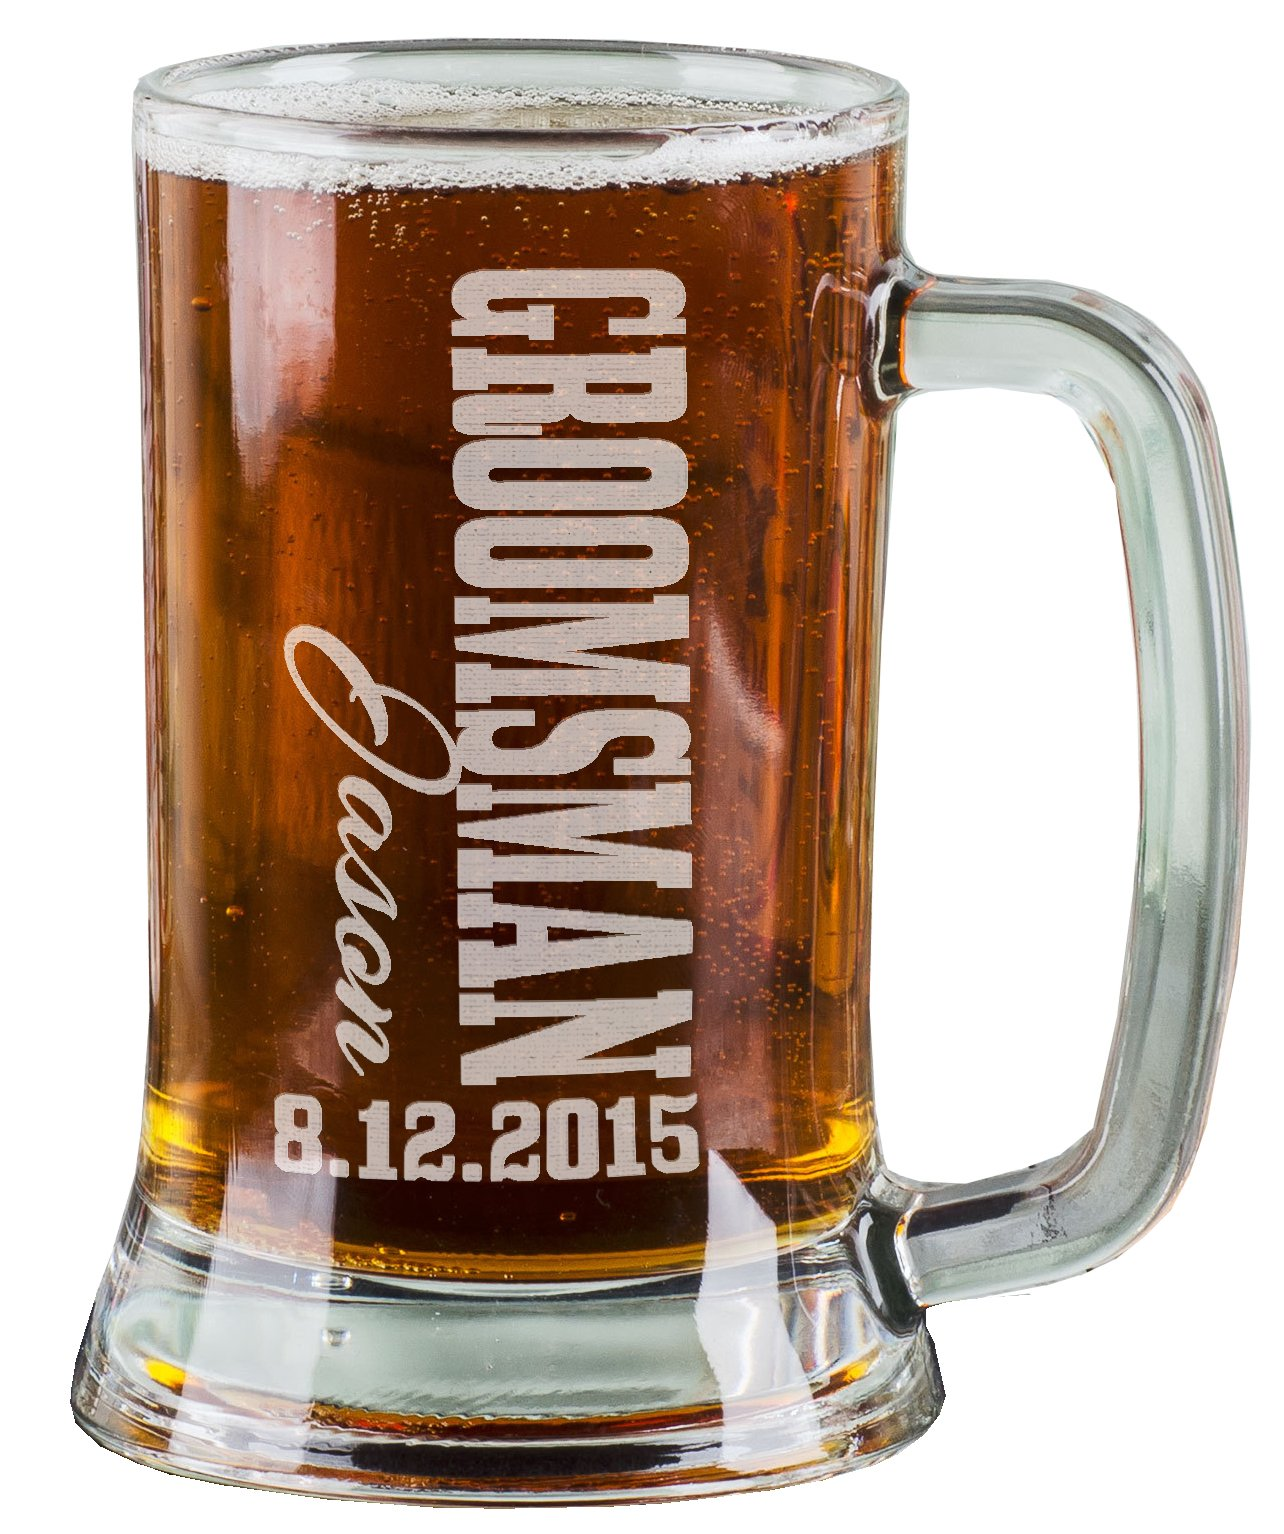 One 16 Oz Groomsmen Beer Mug Wedding Party Gifts for Groomsman Beer Glass Etched Engraved Custom with Name and Date for Wedding, Engagement Bachelor Party Groomsmen Gifts